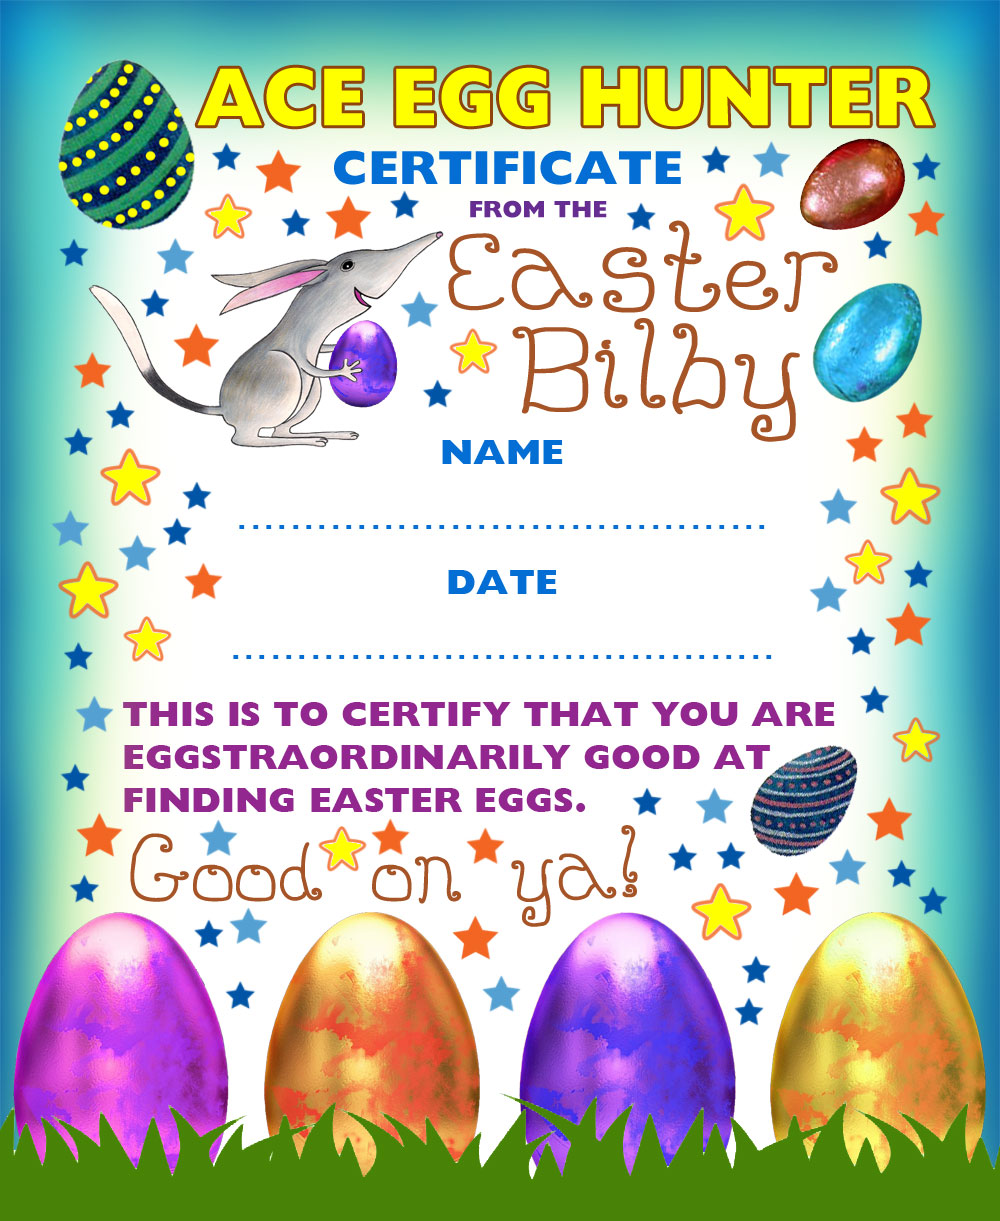 Ace egg hunter certificate from the Easter Bilby